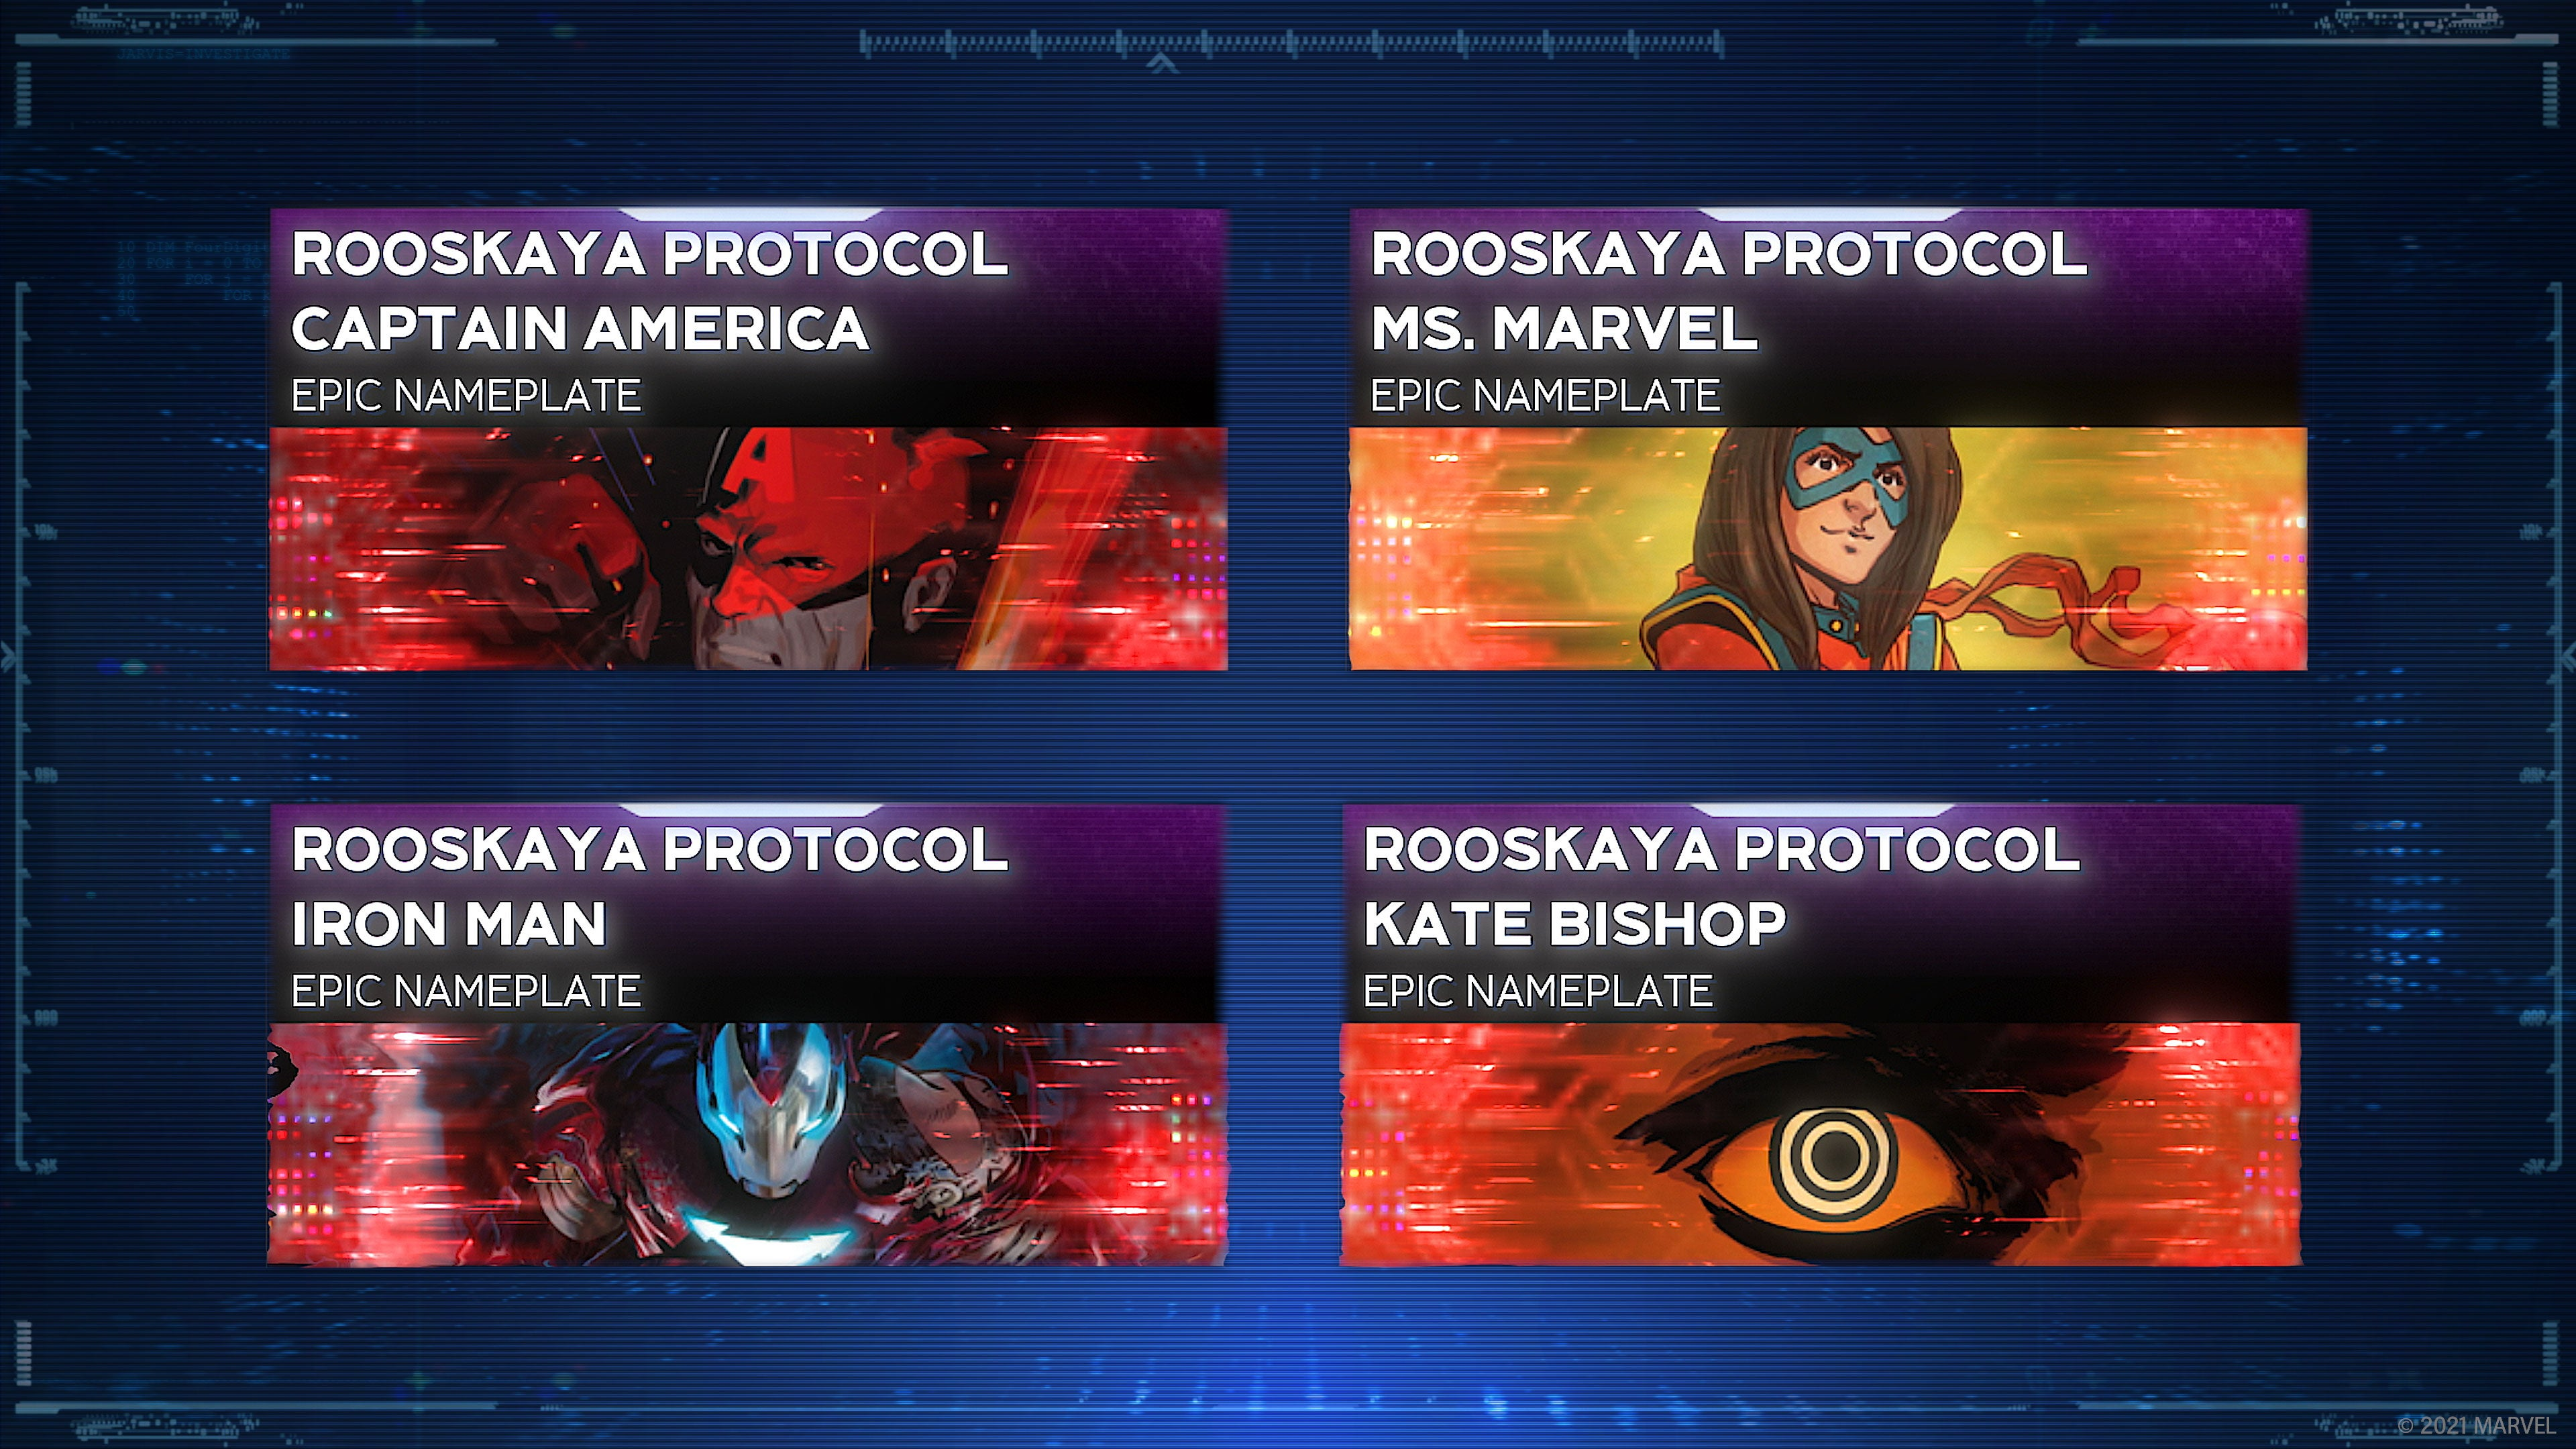 Preview of this week's four animated Red Room nameplates.